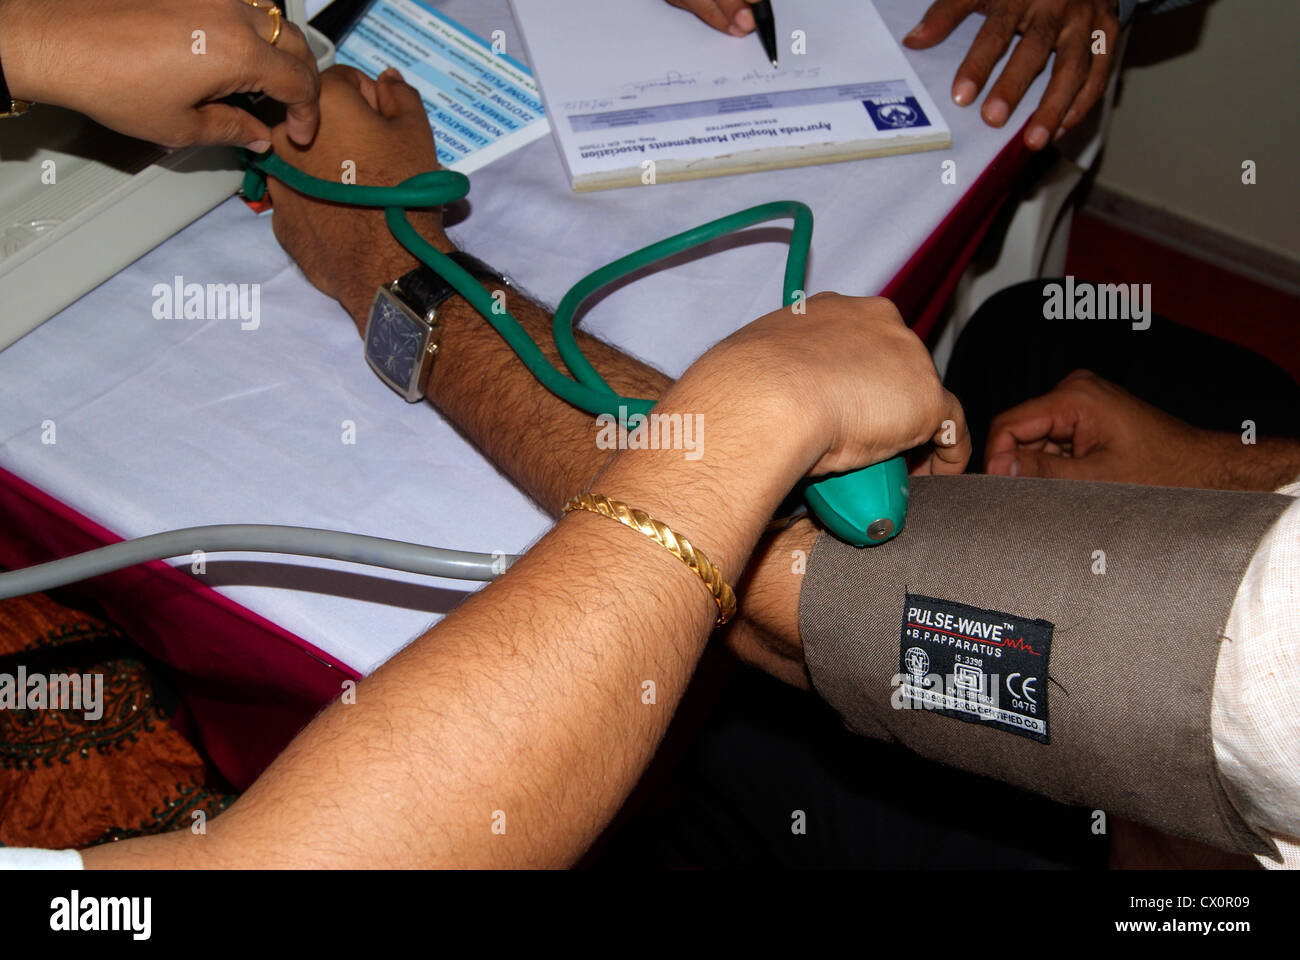 Doctor Checking the Blood Pressure of the Patient using sphygmomanometer Device at Hospital in India - Stock Image